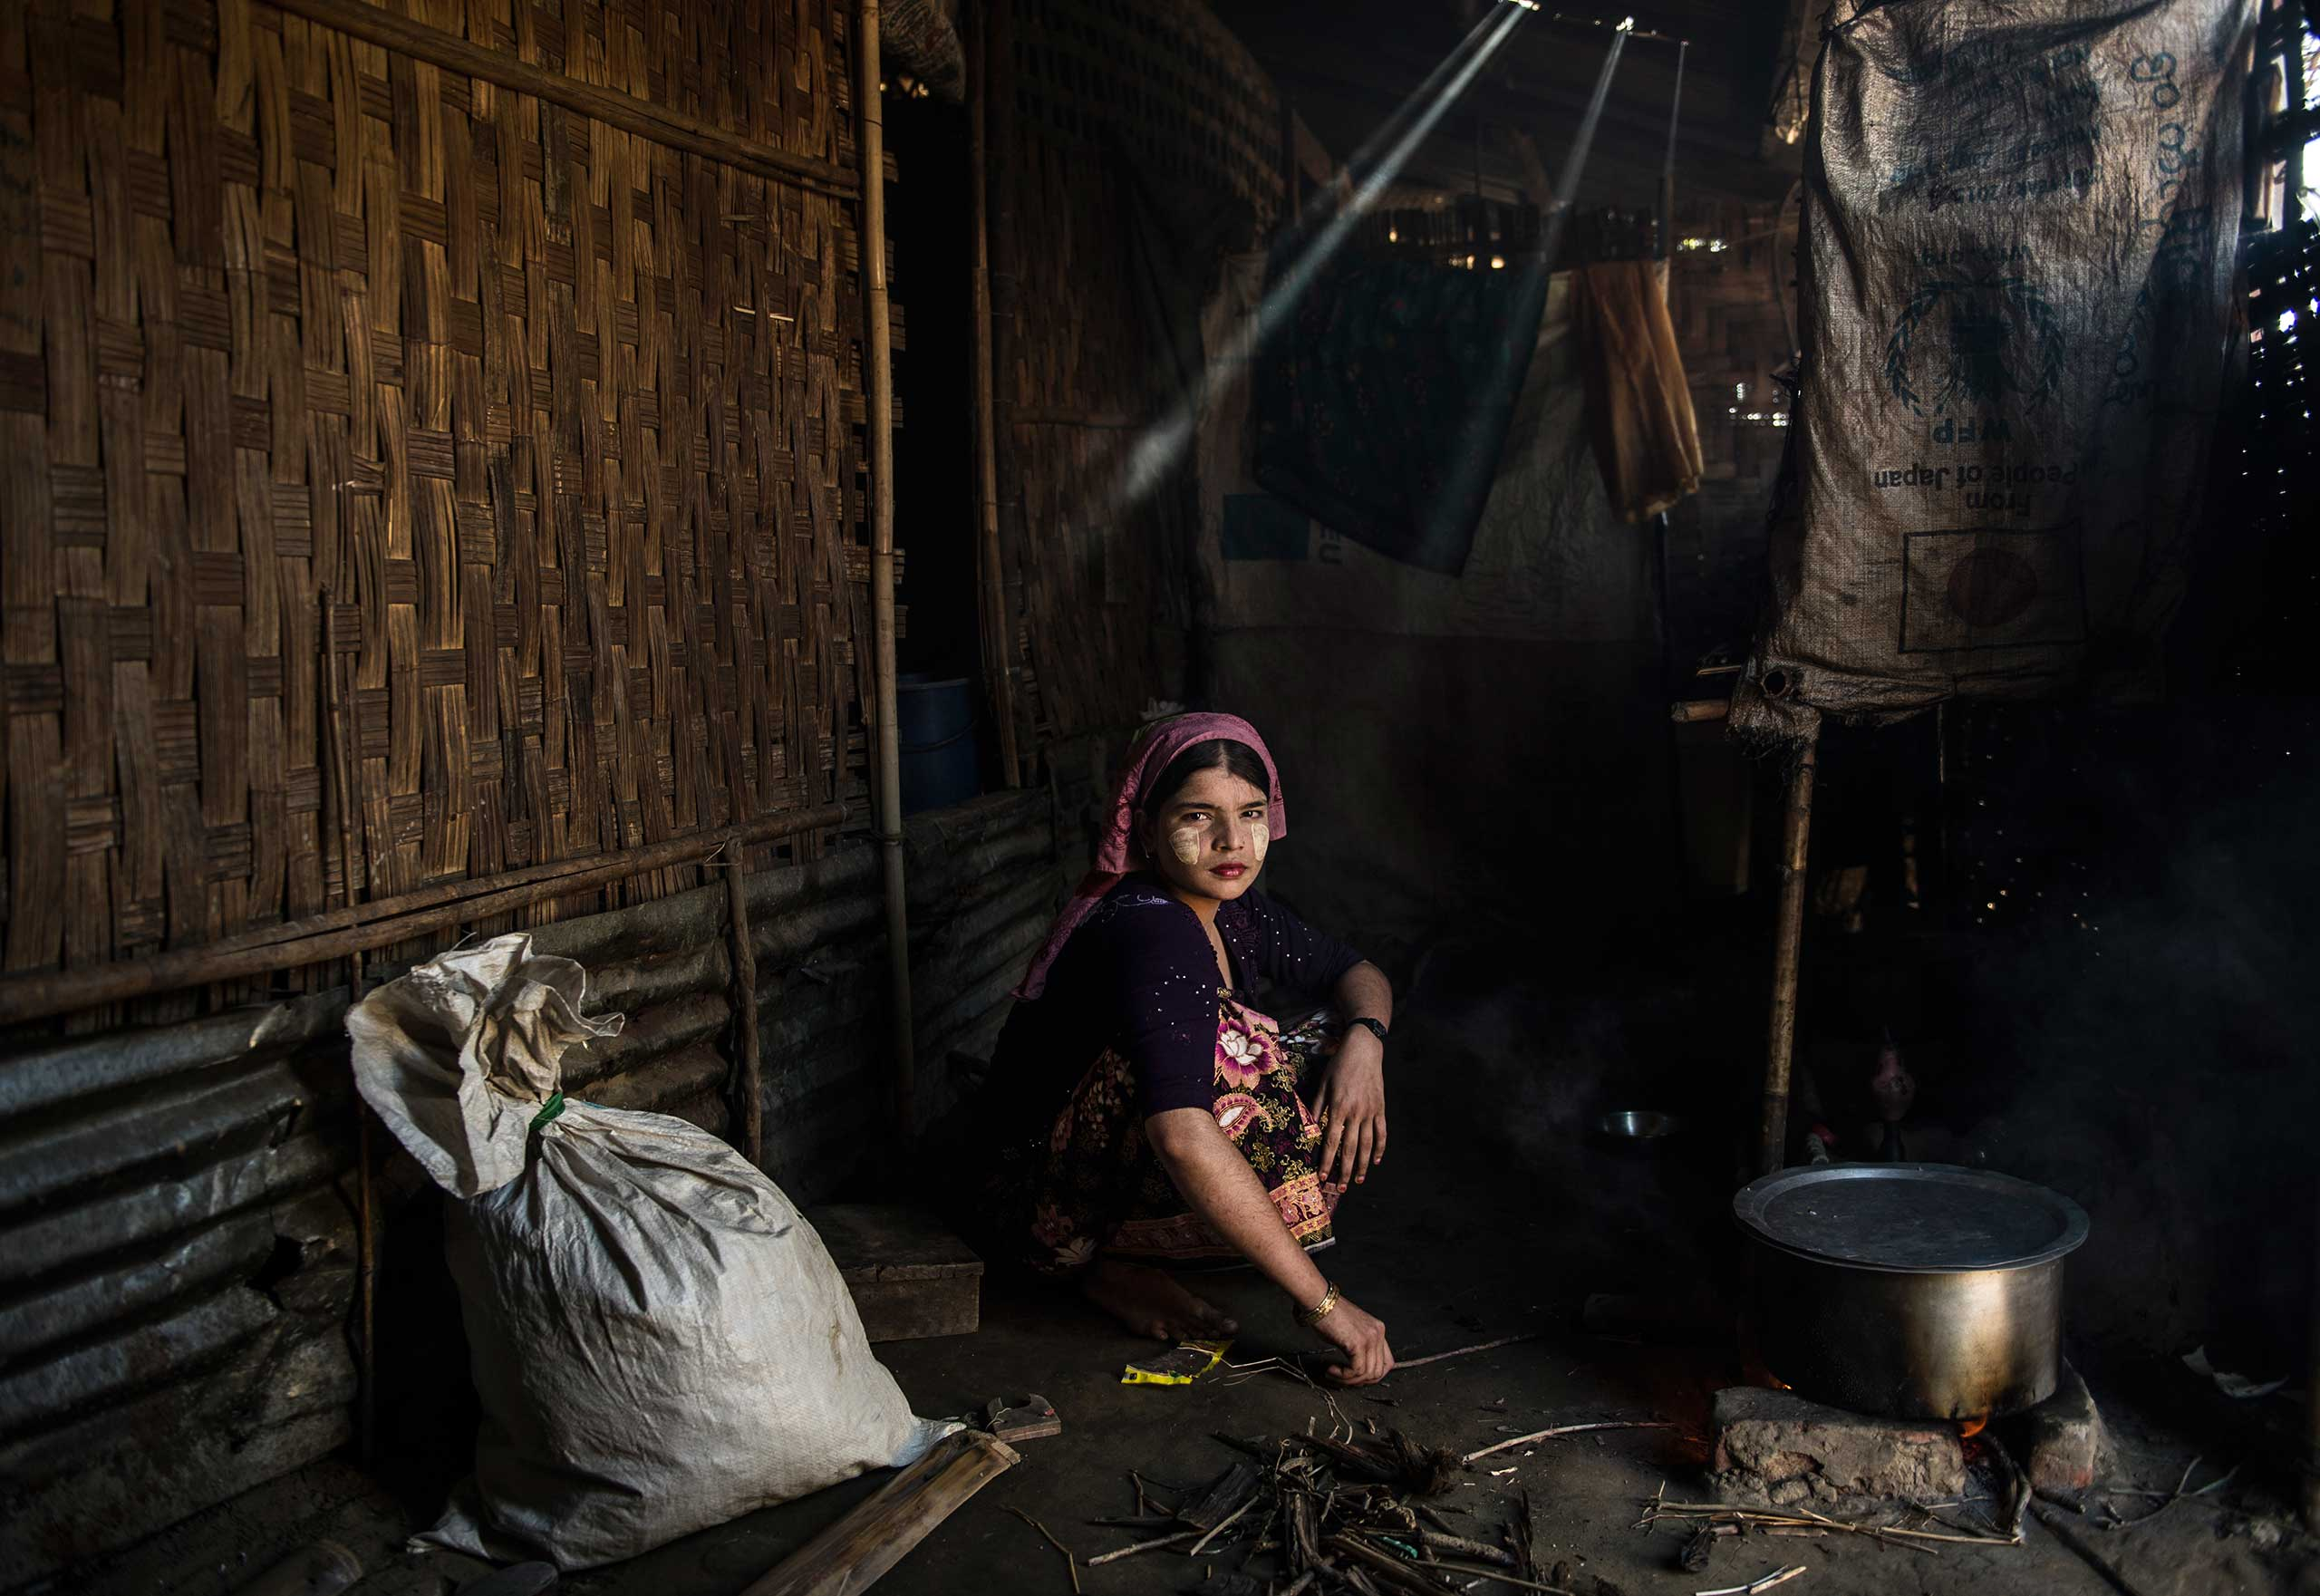 Say Tha Mar Gyi camp for Internally Displaced Rohingya. Aisha Begum, 18, cooks in her family home in the camp, Nov. 26, 2015. Aisha is married, but her husband left her less than a year ago to go live with his family again.